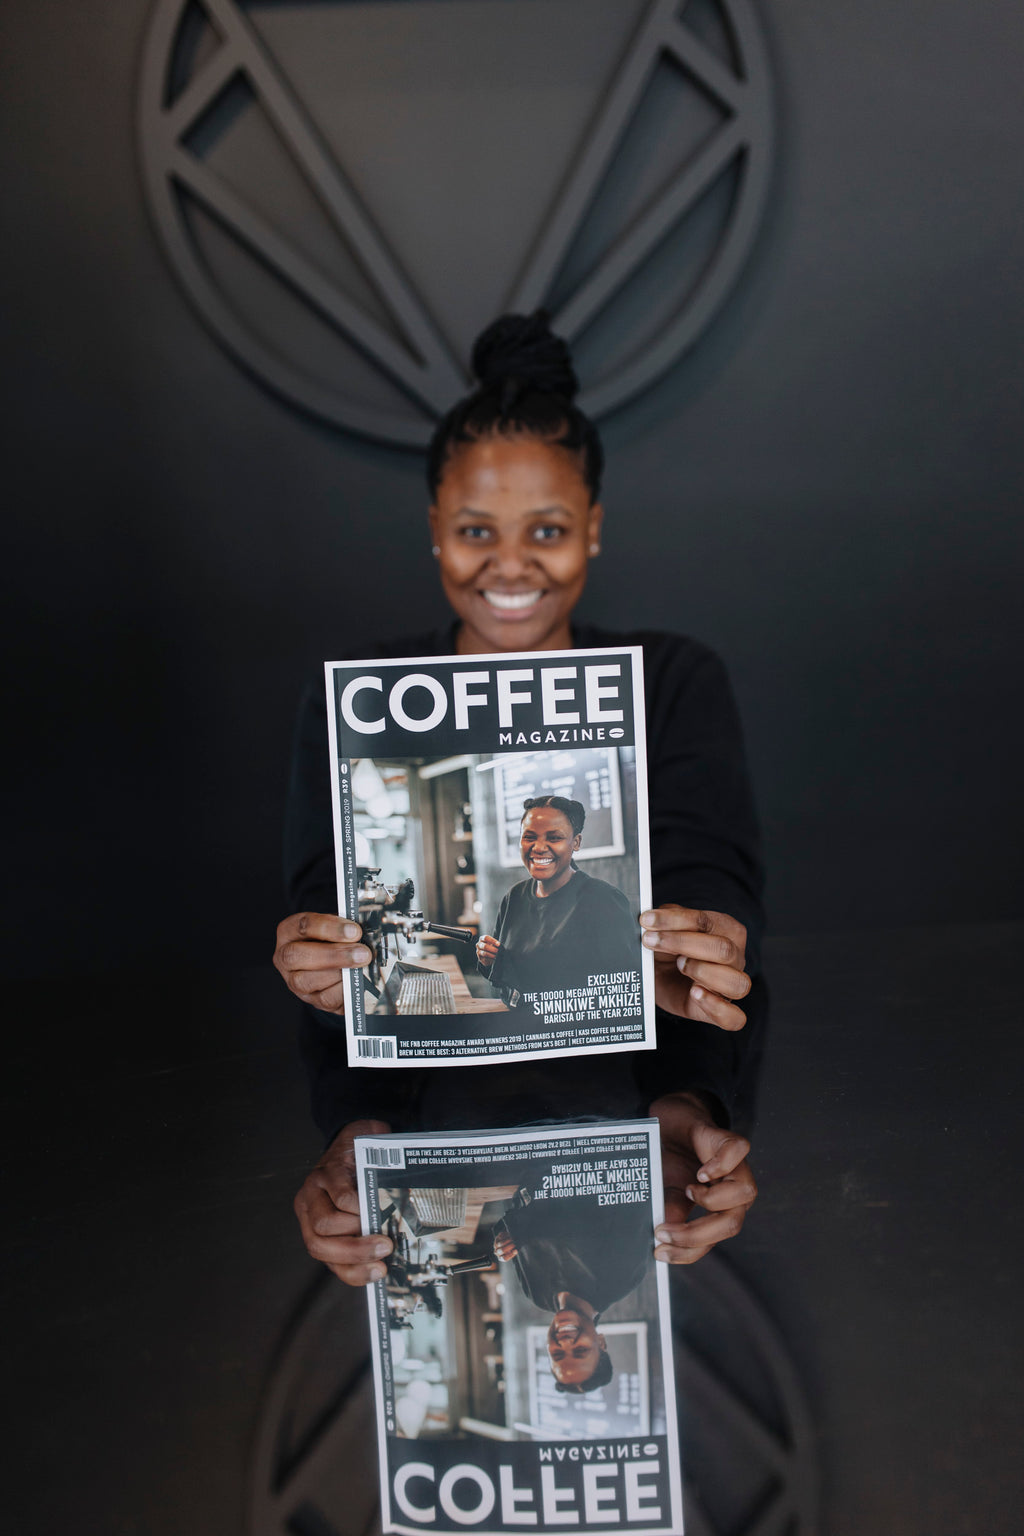 Coffee Magazine